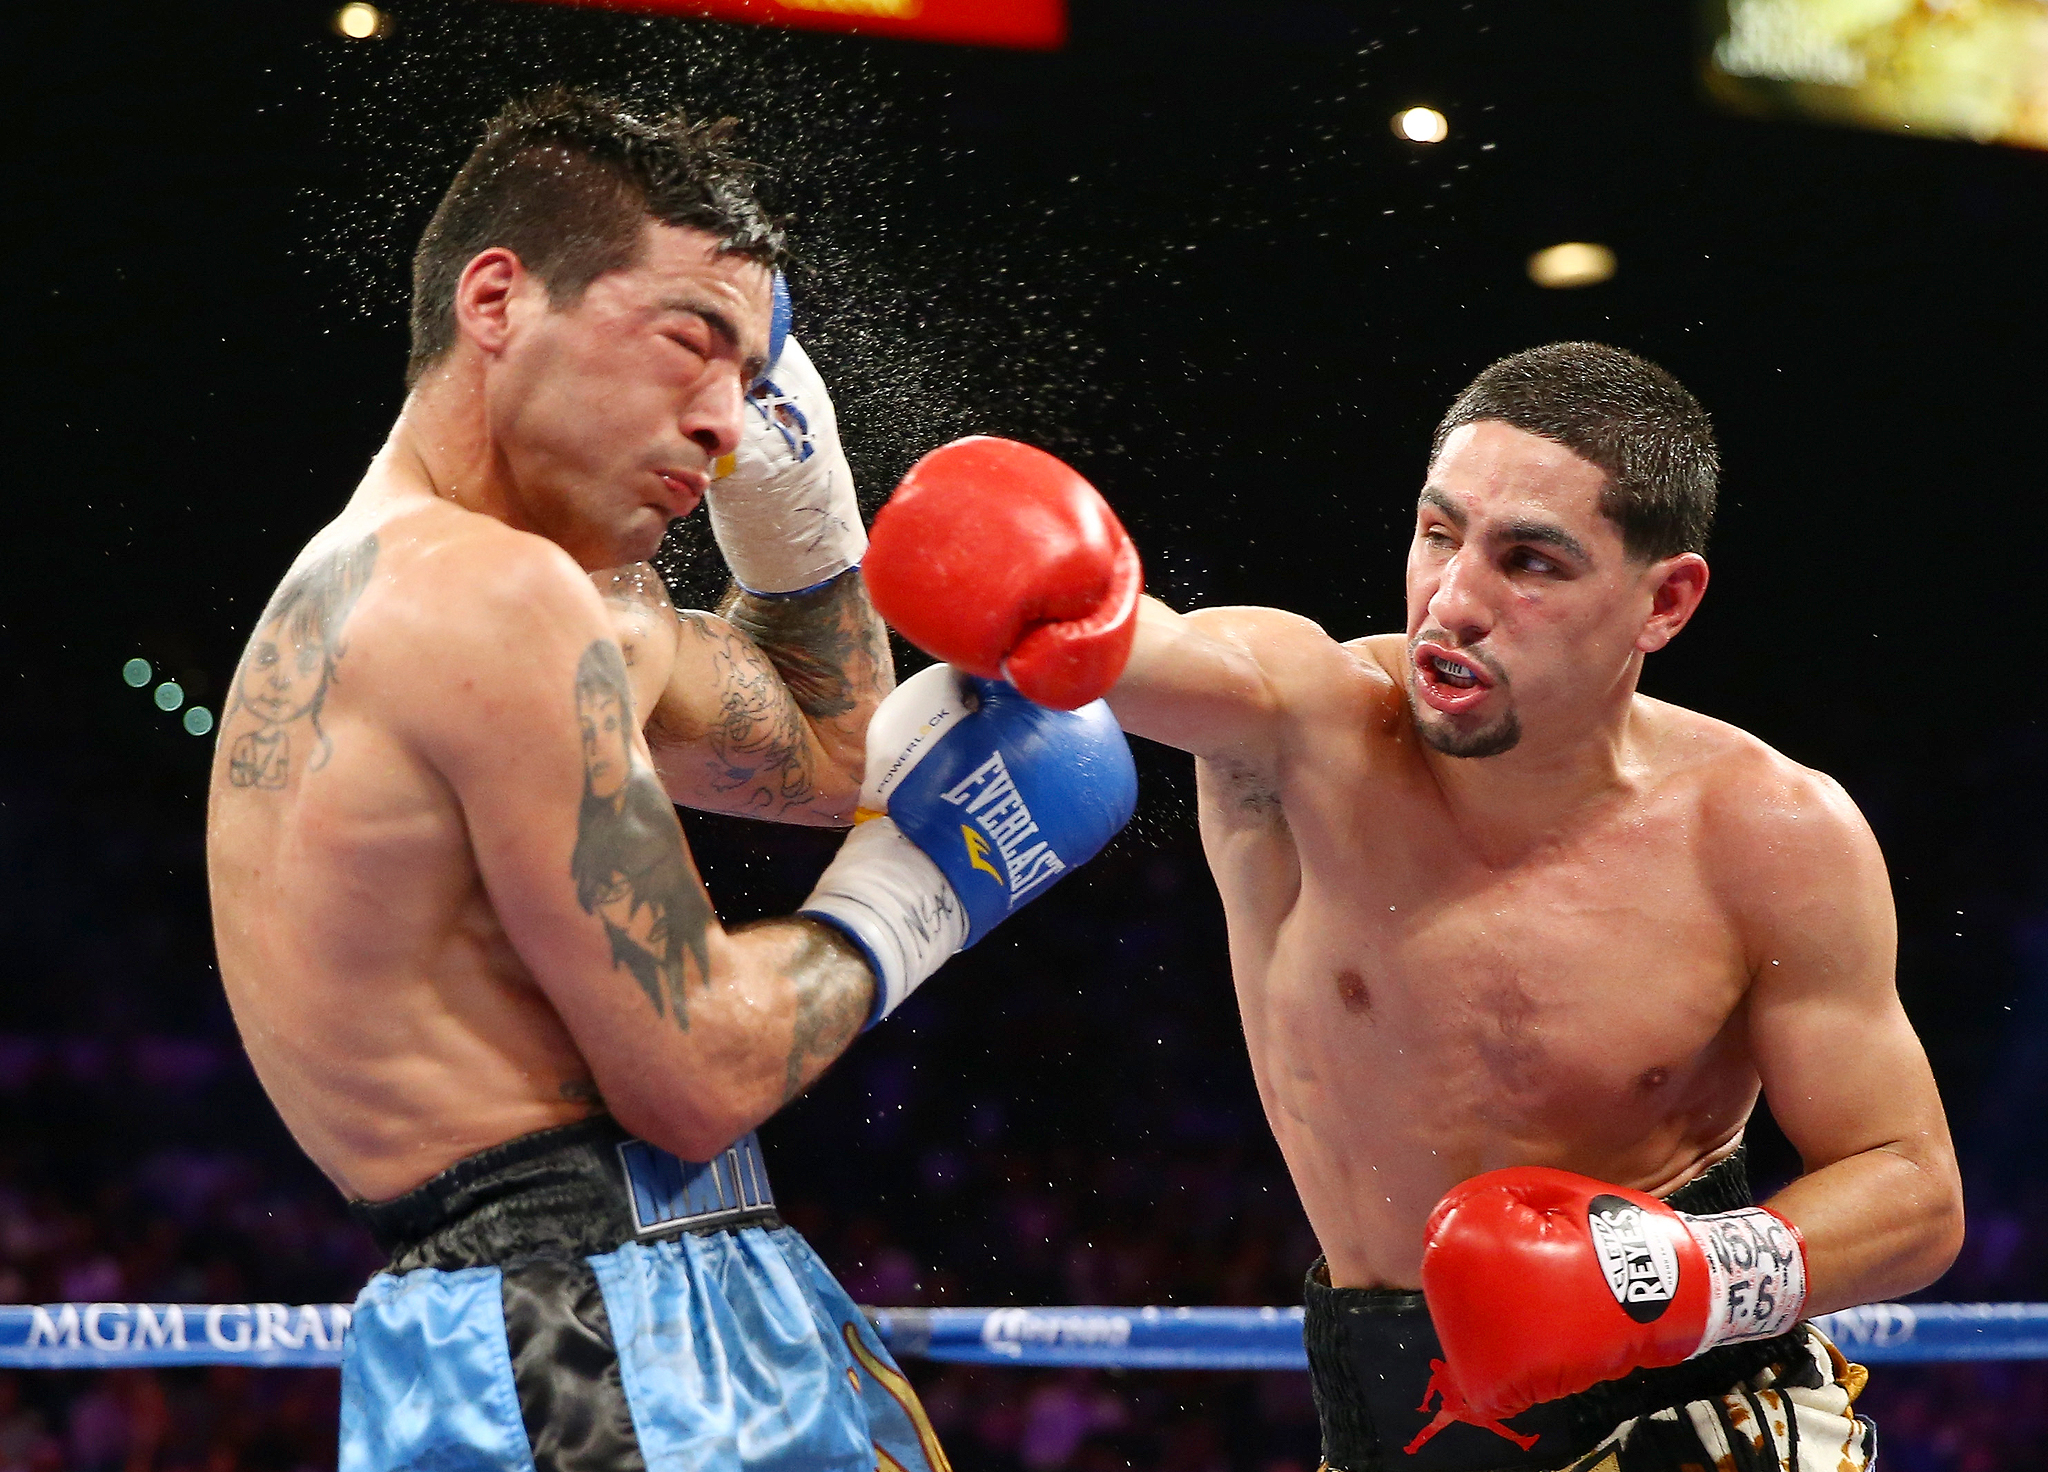 Danny Garcia punches Lucas Matthysse